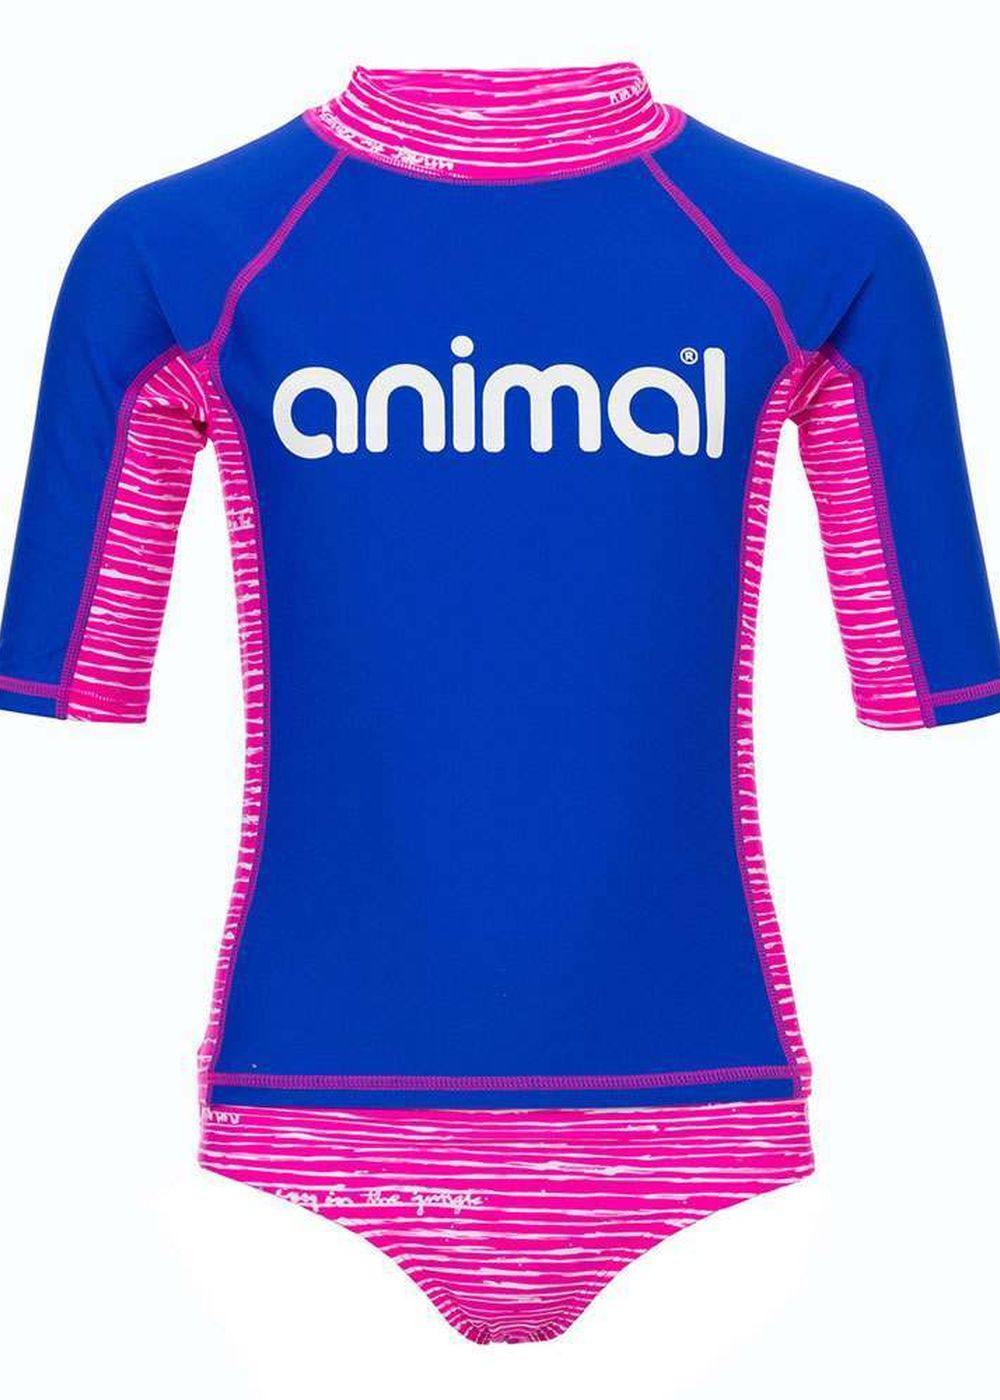 Animal Girls Shipwrecked Rash Suit Pink